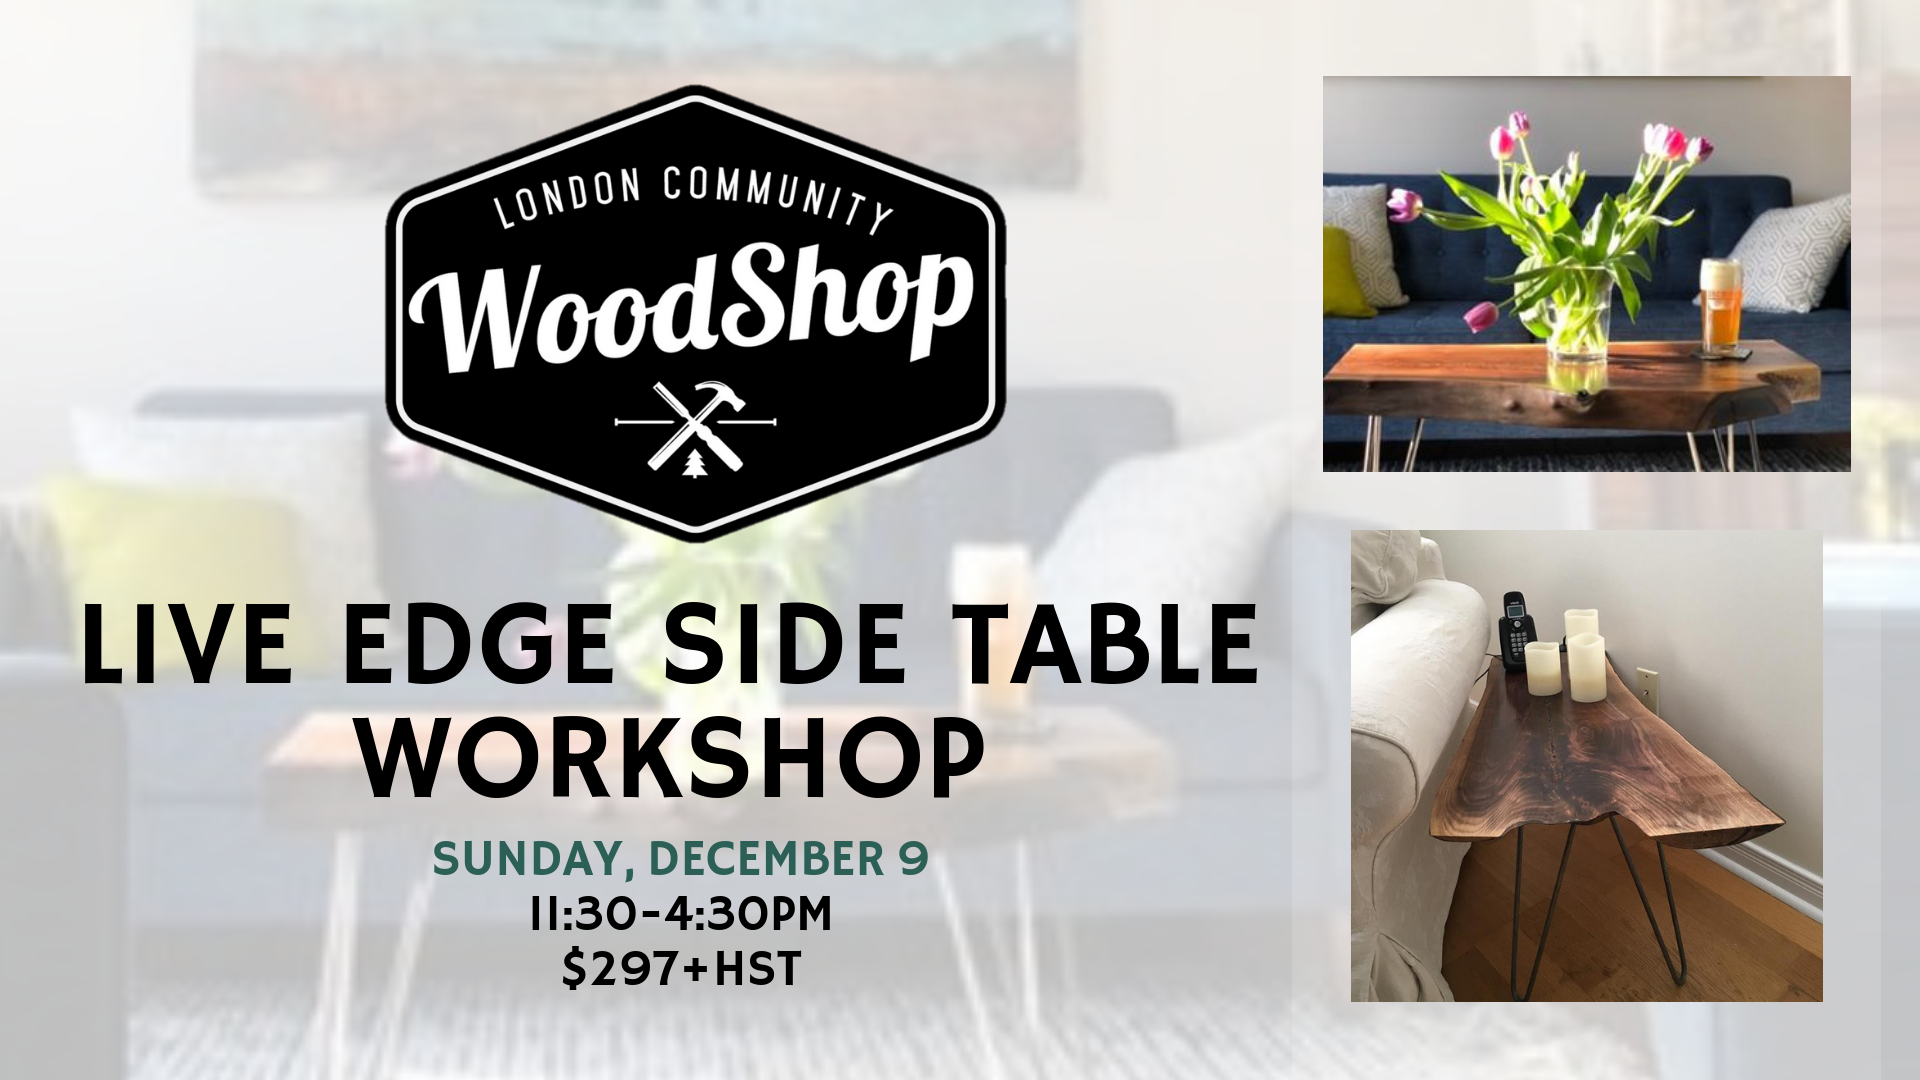 Live Edge Side Table December 9th, 2018 Image (Added Date)